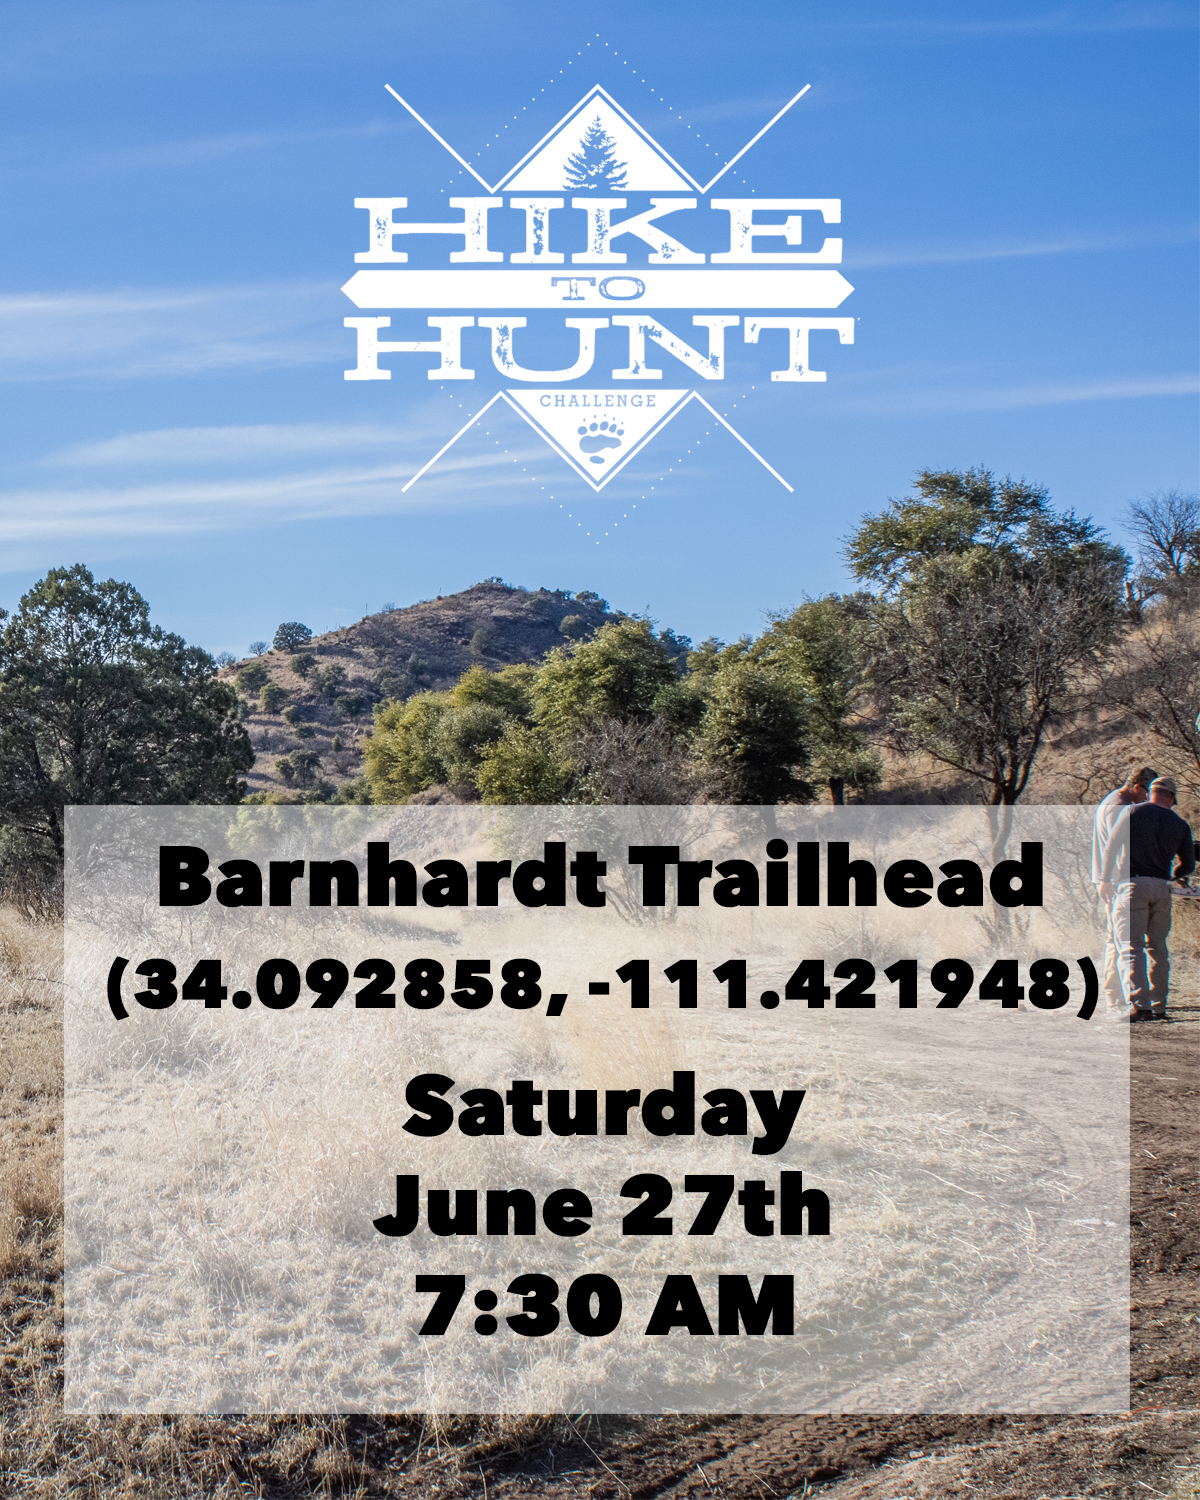 Barnhardt_trailhead_flyer_edited-1.jpg